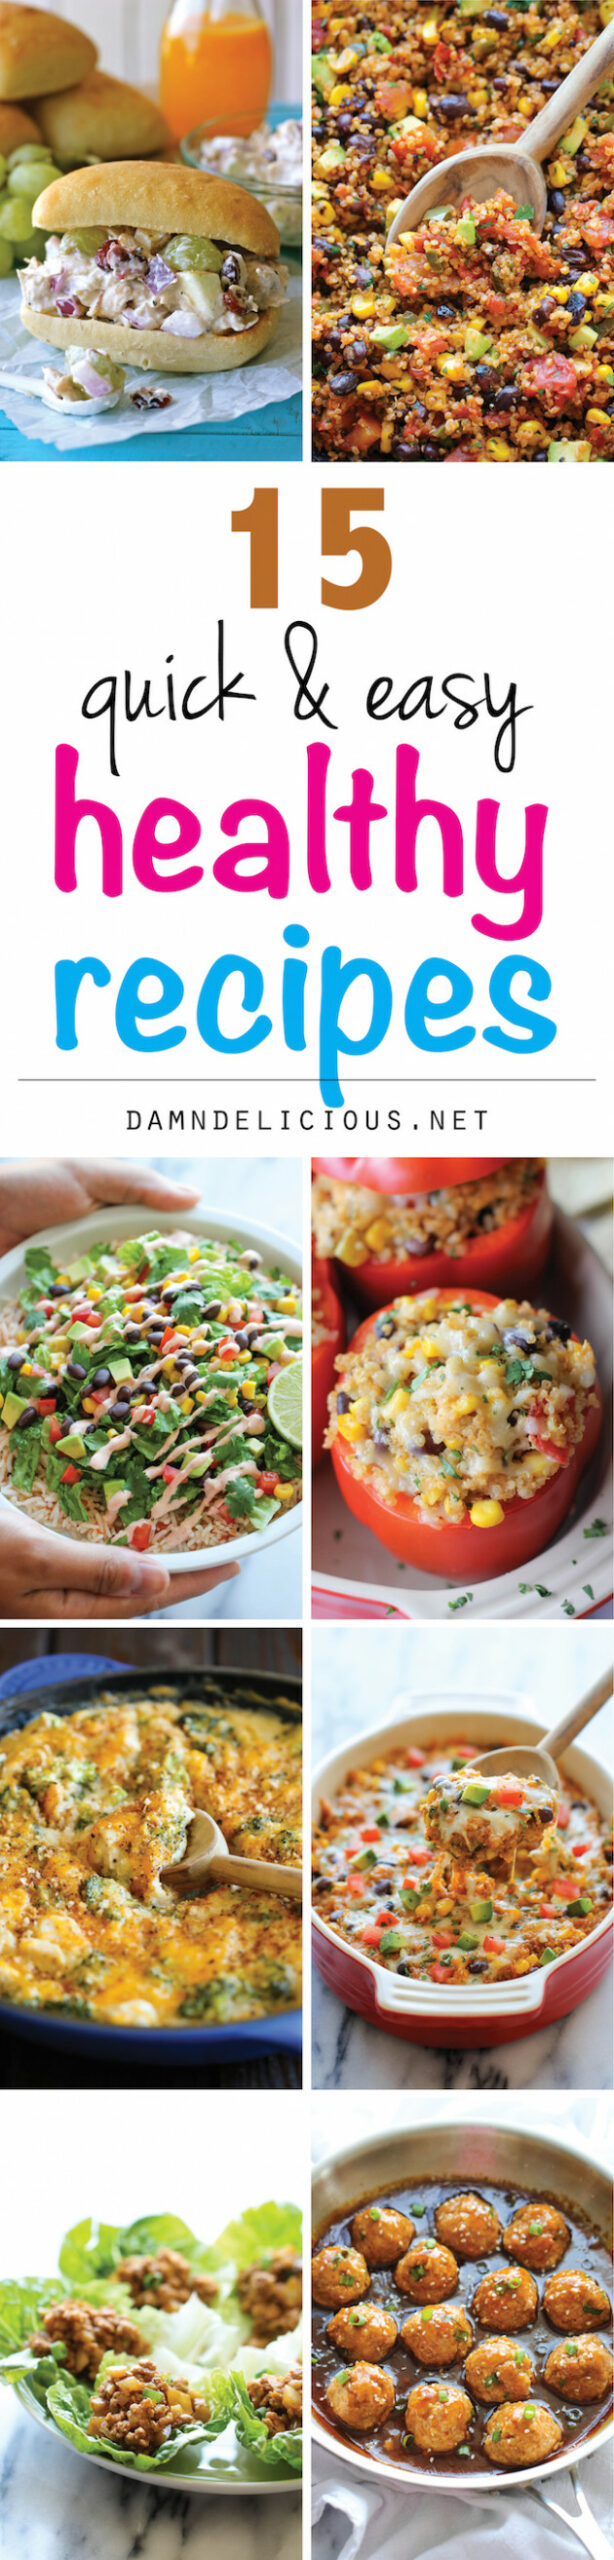 10 Quick and Easy Healthy Recipes - Damn Delicious - yummy healthy recipes